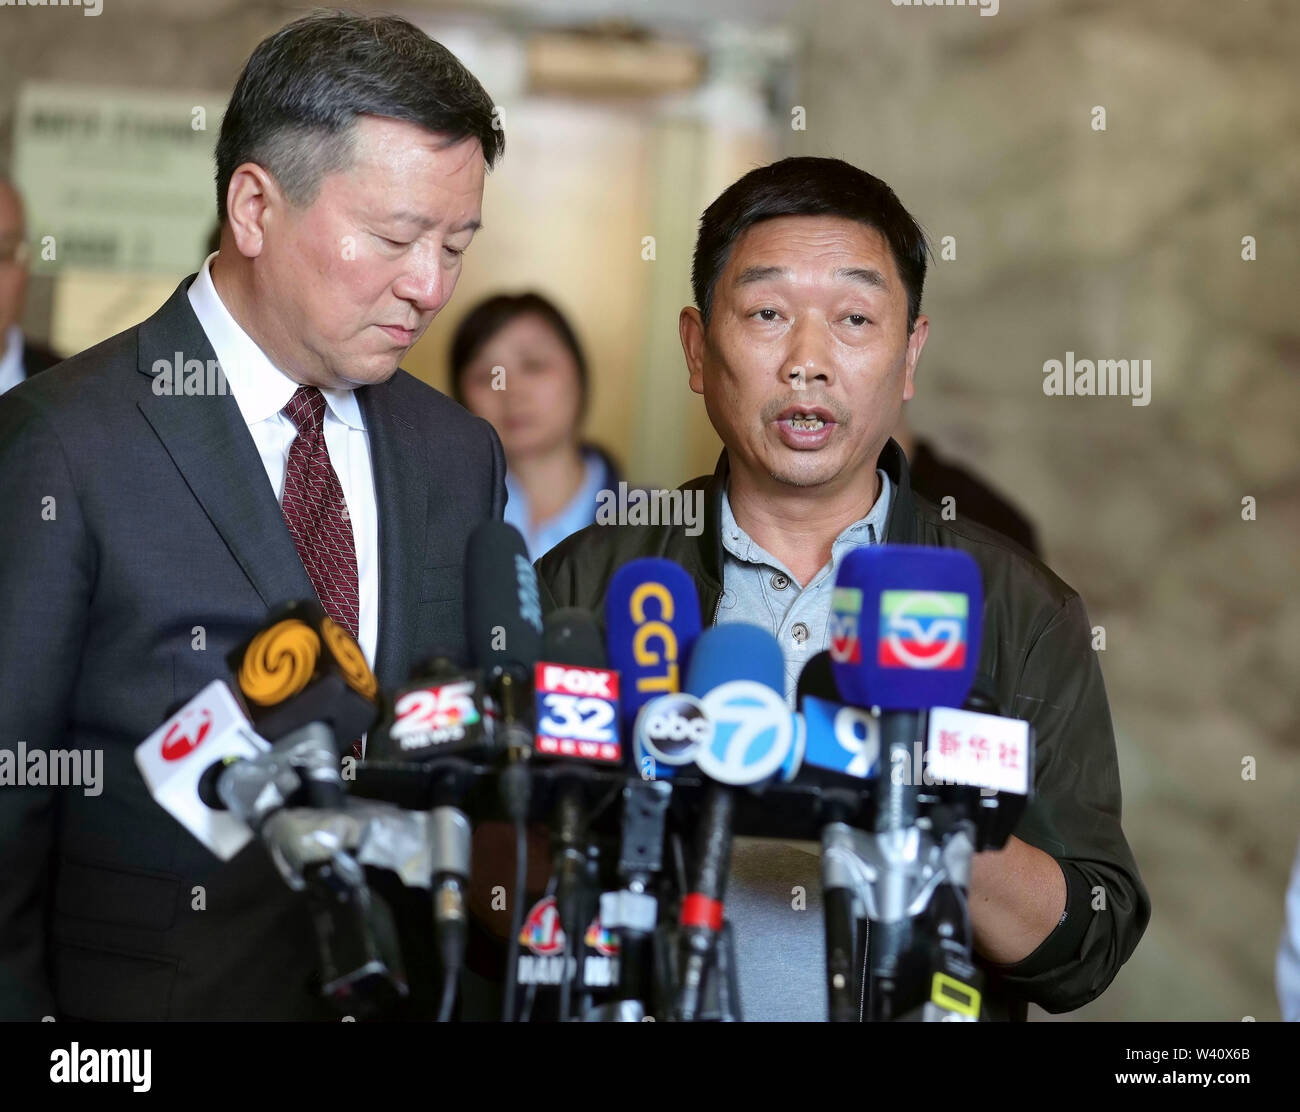 Peoria, USA. 18th July, 2019. Zhang Yingying's father (R) speaks at a press conference after sentencing in Peoria, Illinois, the United States, July 18, 2019. Brendt Christensen, the kidnapper and killer of Chinese scholar Zhang Yingying in 2017, was sentenced on Thursday to life imprisonment without possibility of release, Judge James Shadid announced the verdict in a federal court of Peoria in the U.S. state of Illinois, after the jury failed to reach a unanimous decision on whether he should be sentenced to death or life in prison. Credit: Wang Ping/Xinhua/Alamy Live News - Stock Image